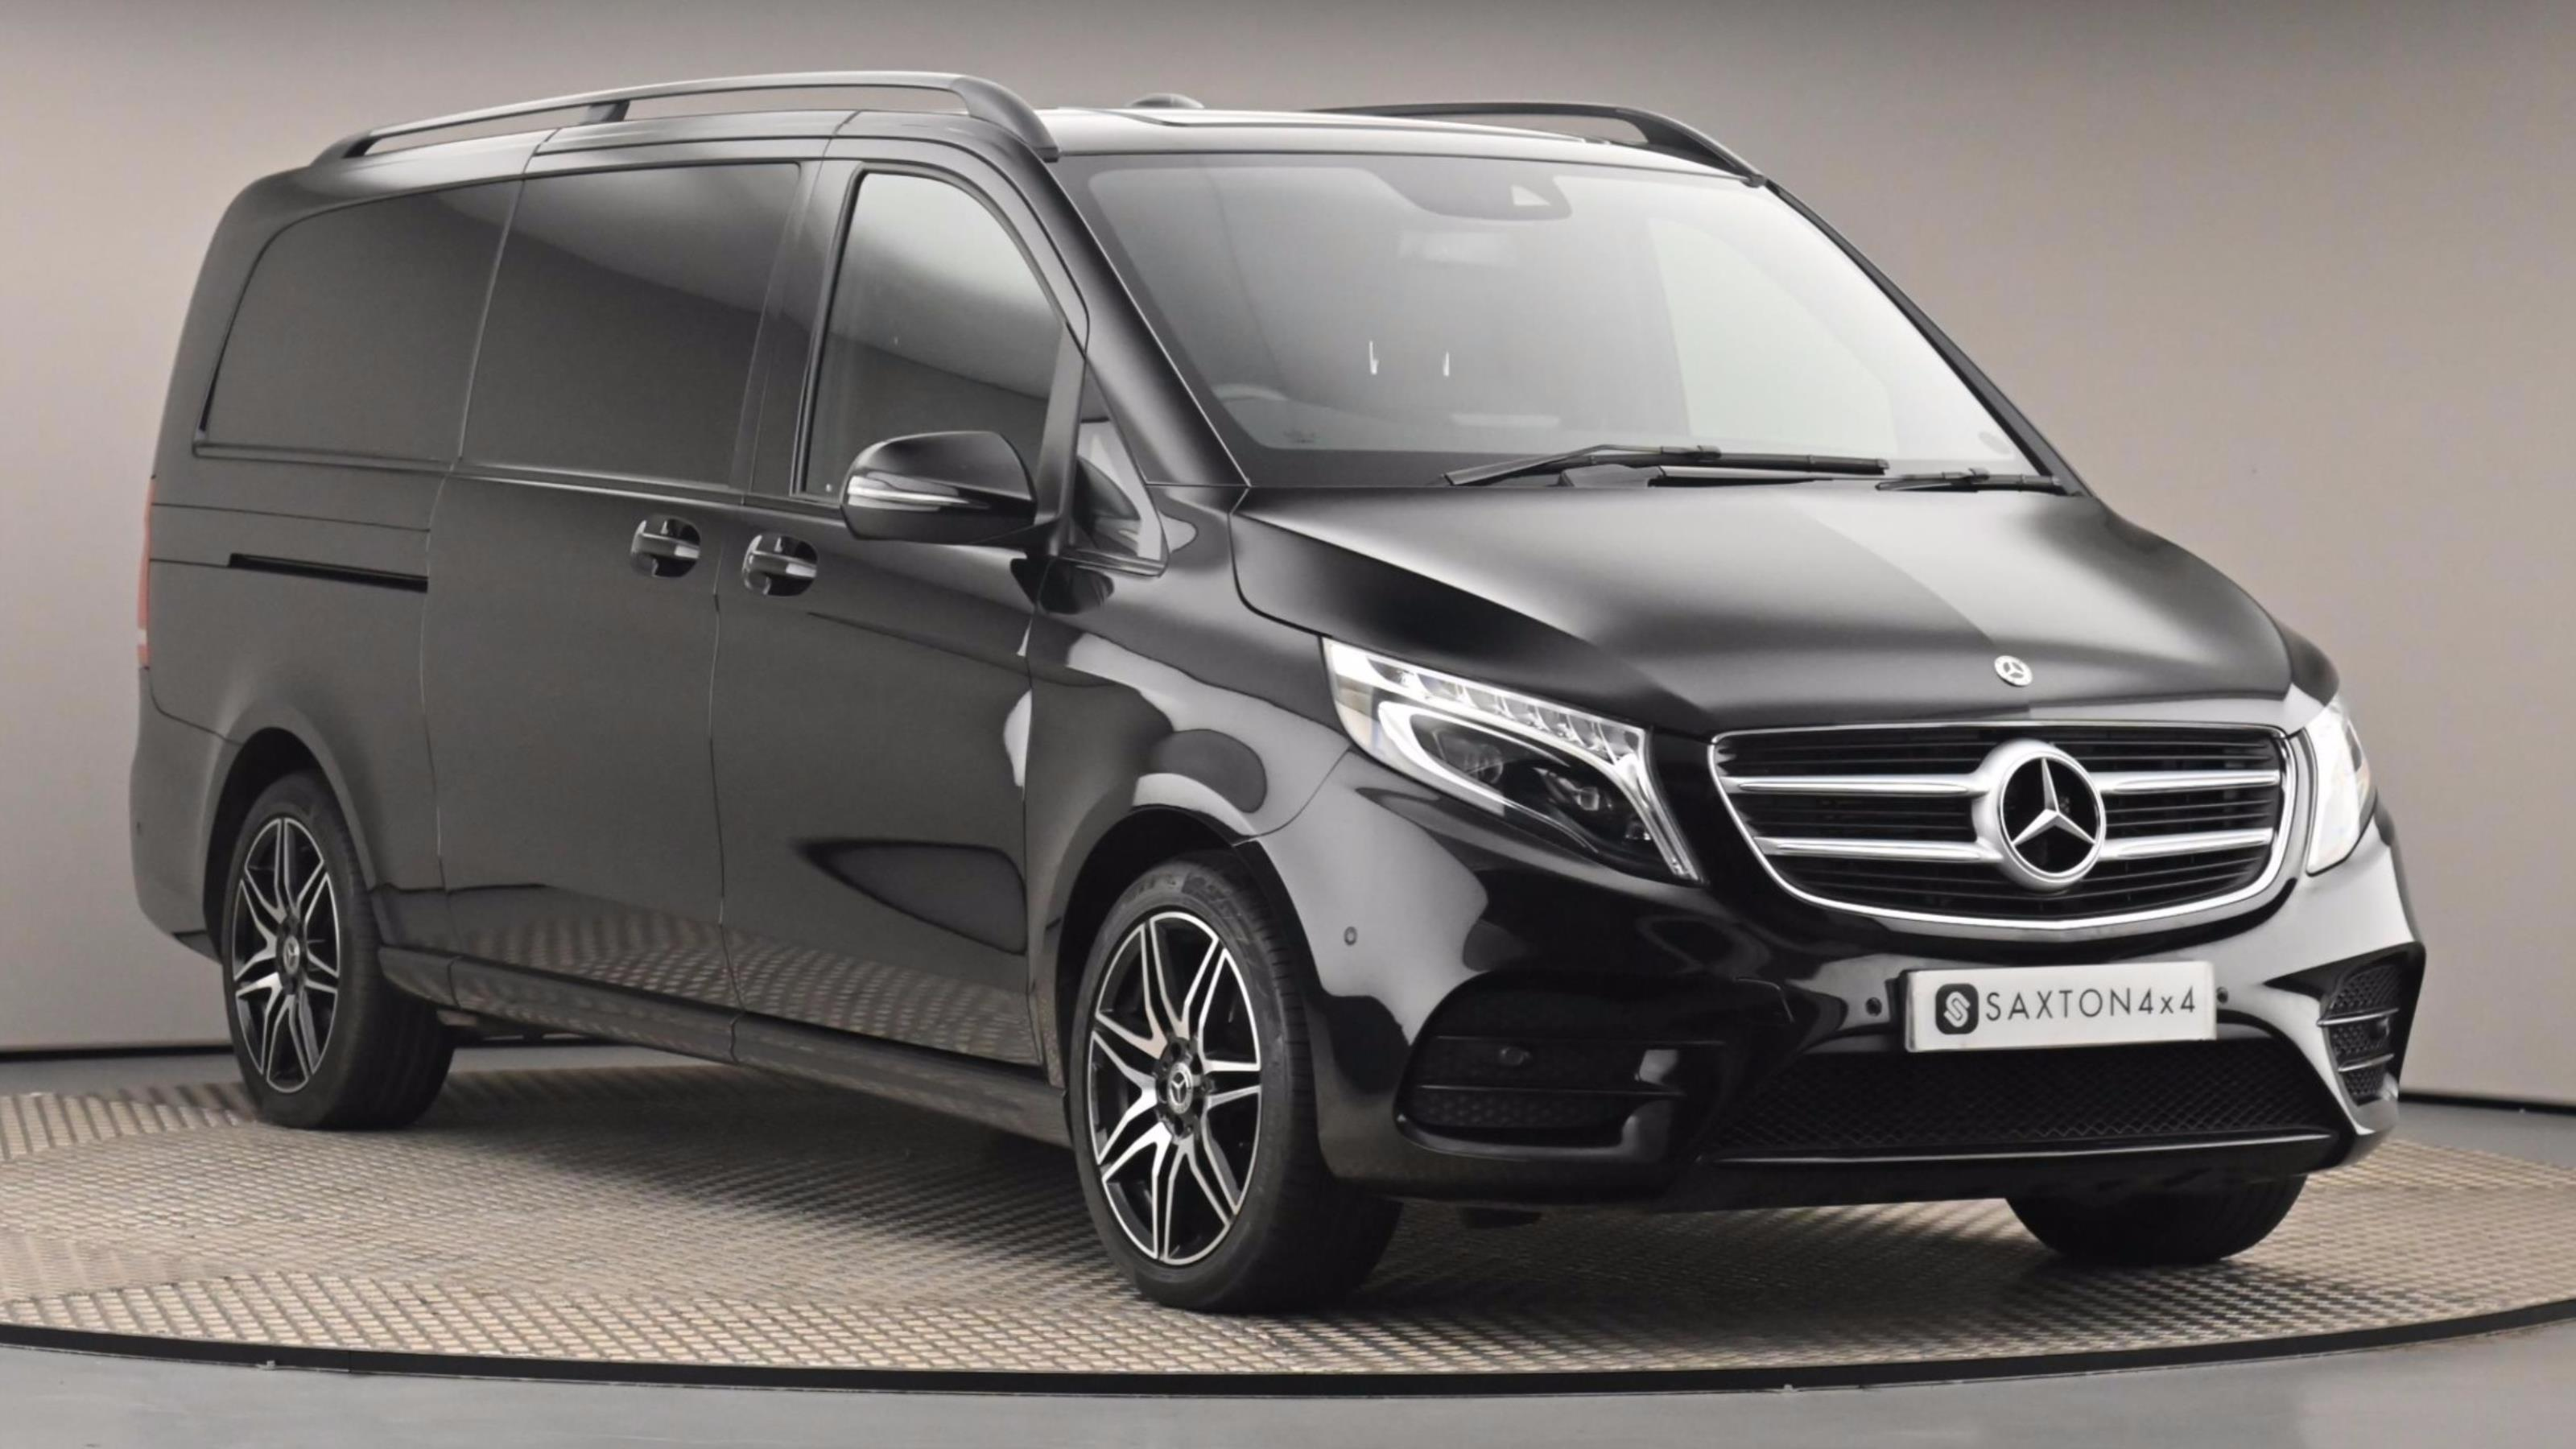 Used 2018 Mercedes-Benz V CLASS V220 d AMG Line 5dr Auto [Extra Long] Black at Saxton4x4